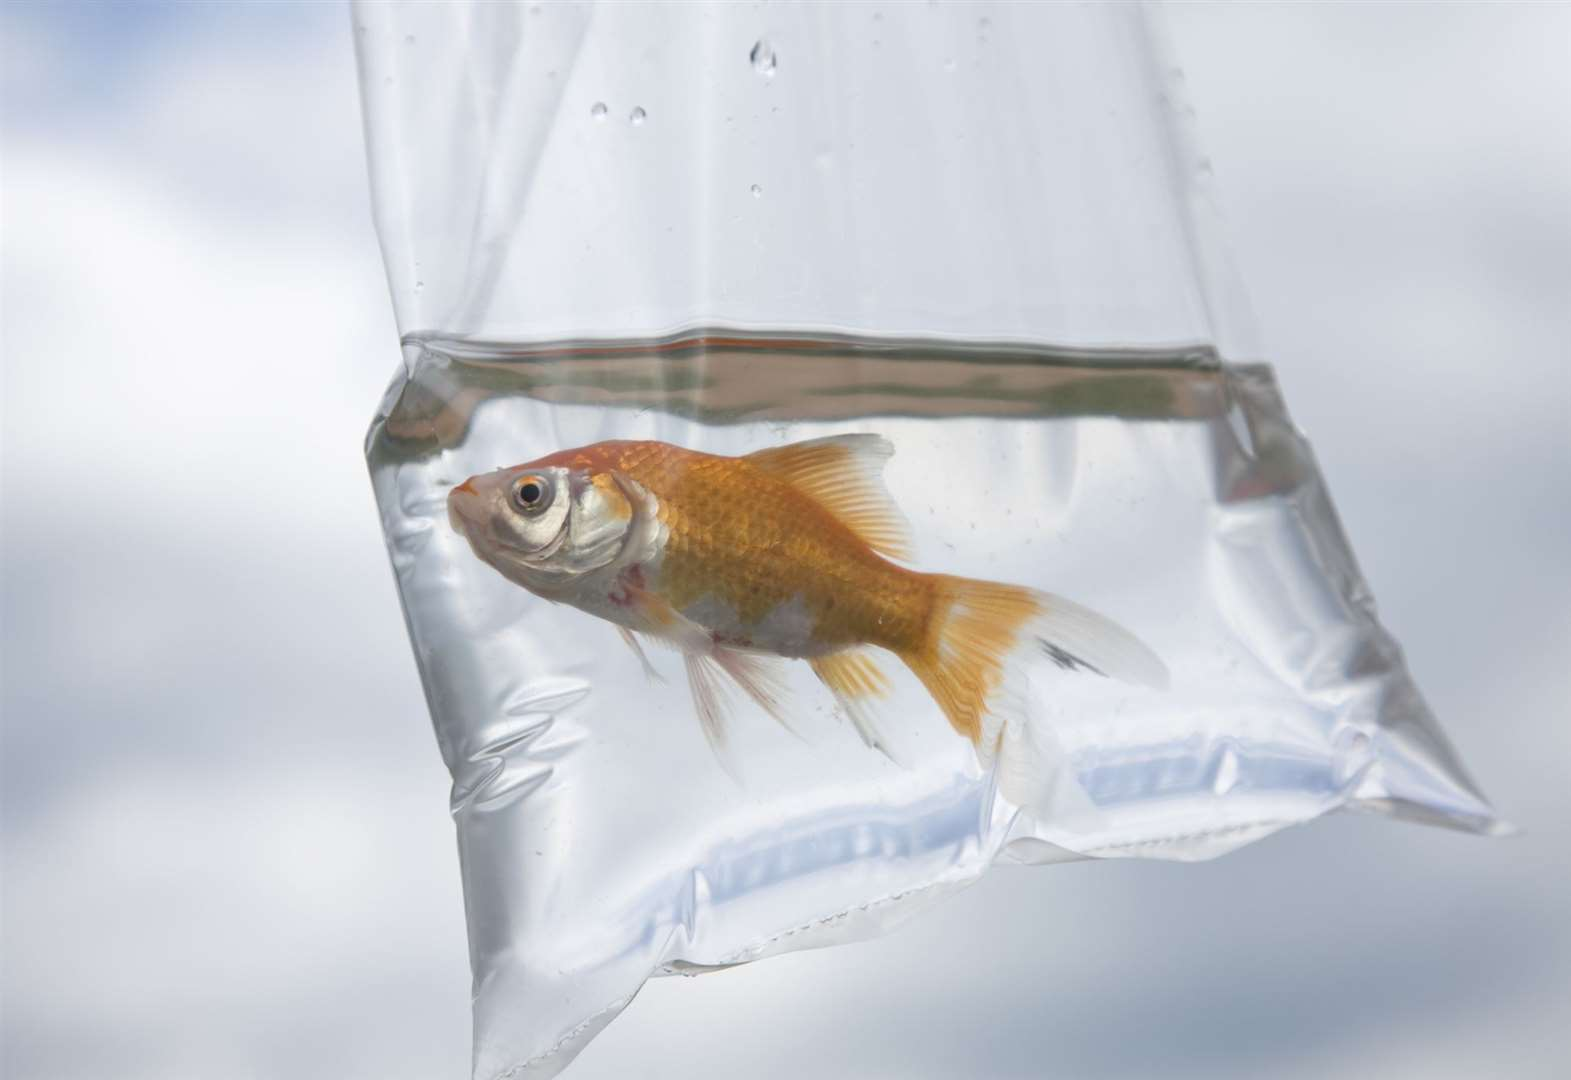 Giving away goldfish in a bag is not illegal in England or Wales